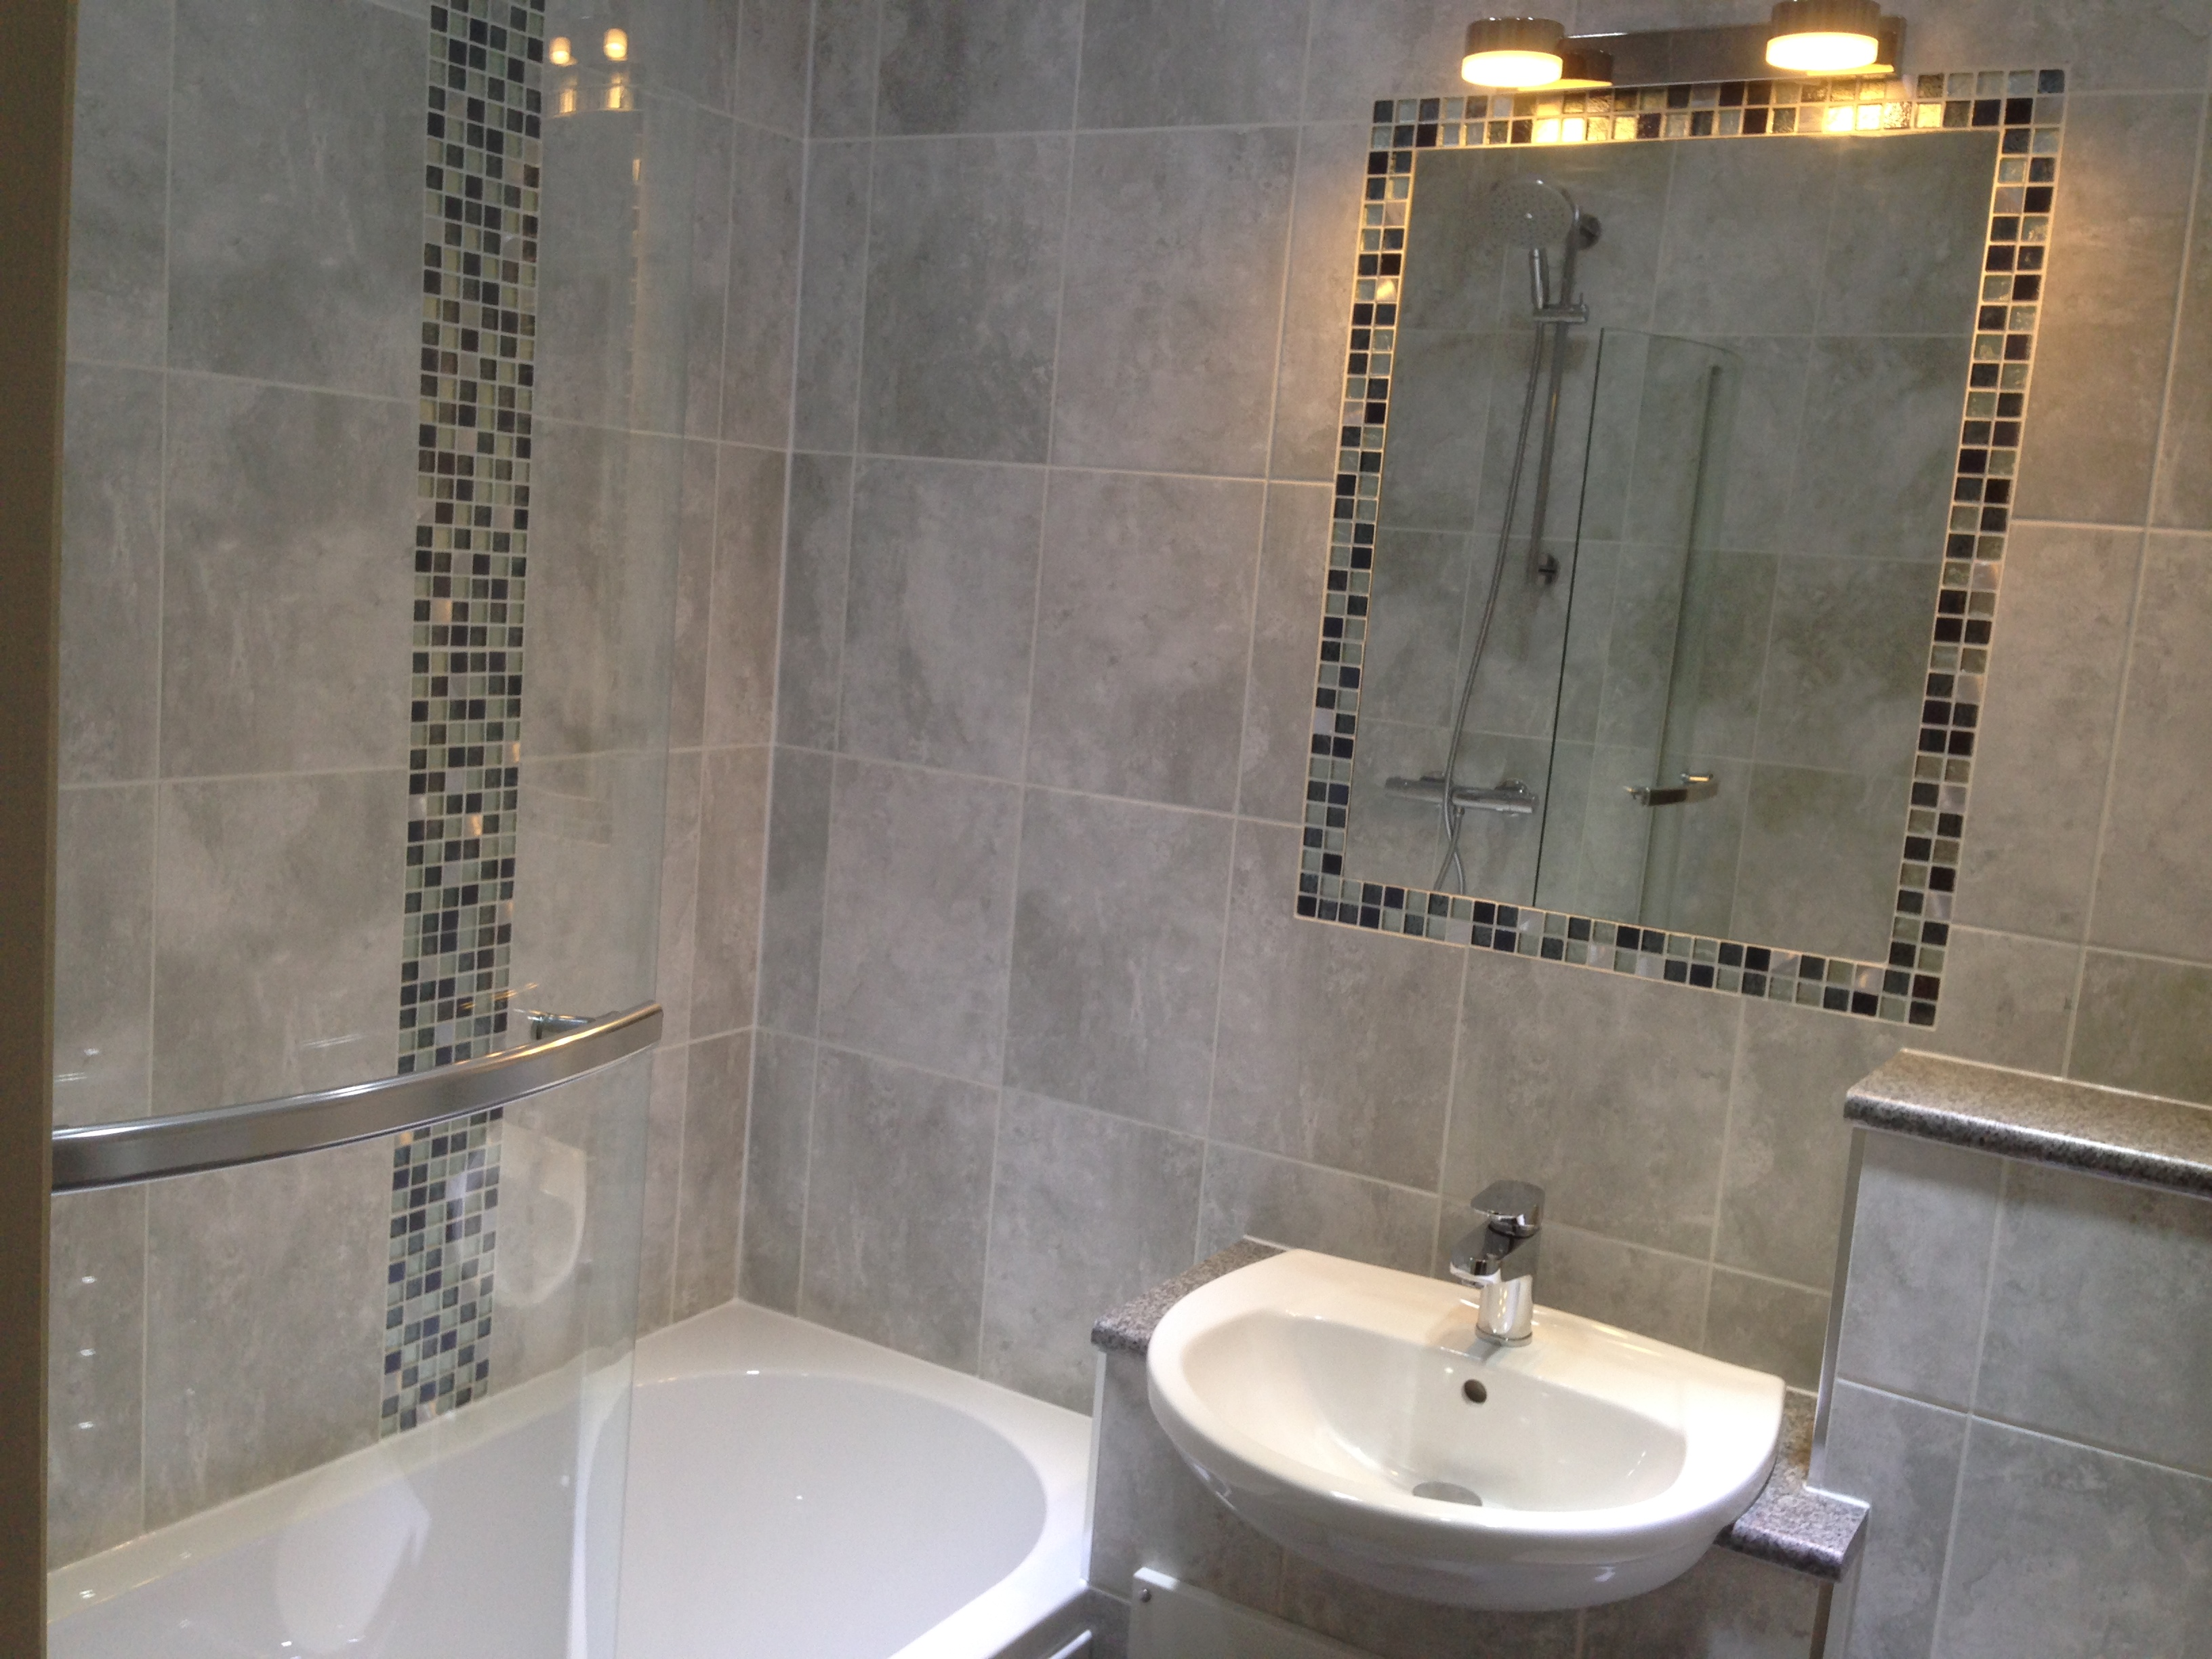 Bathroom Design - Creative Design Bathrooms